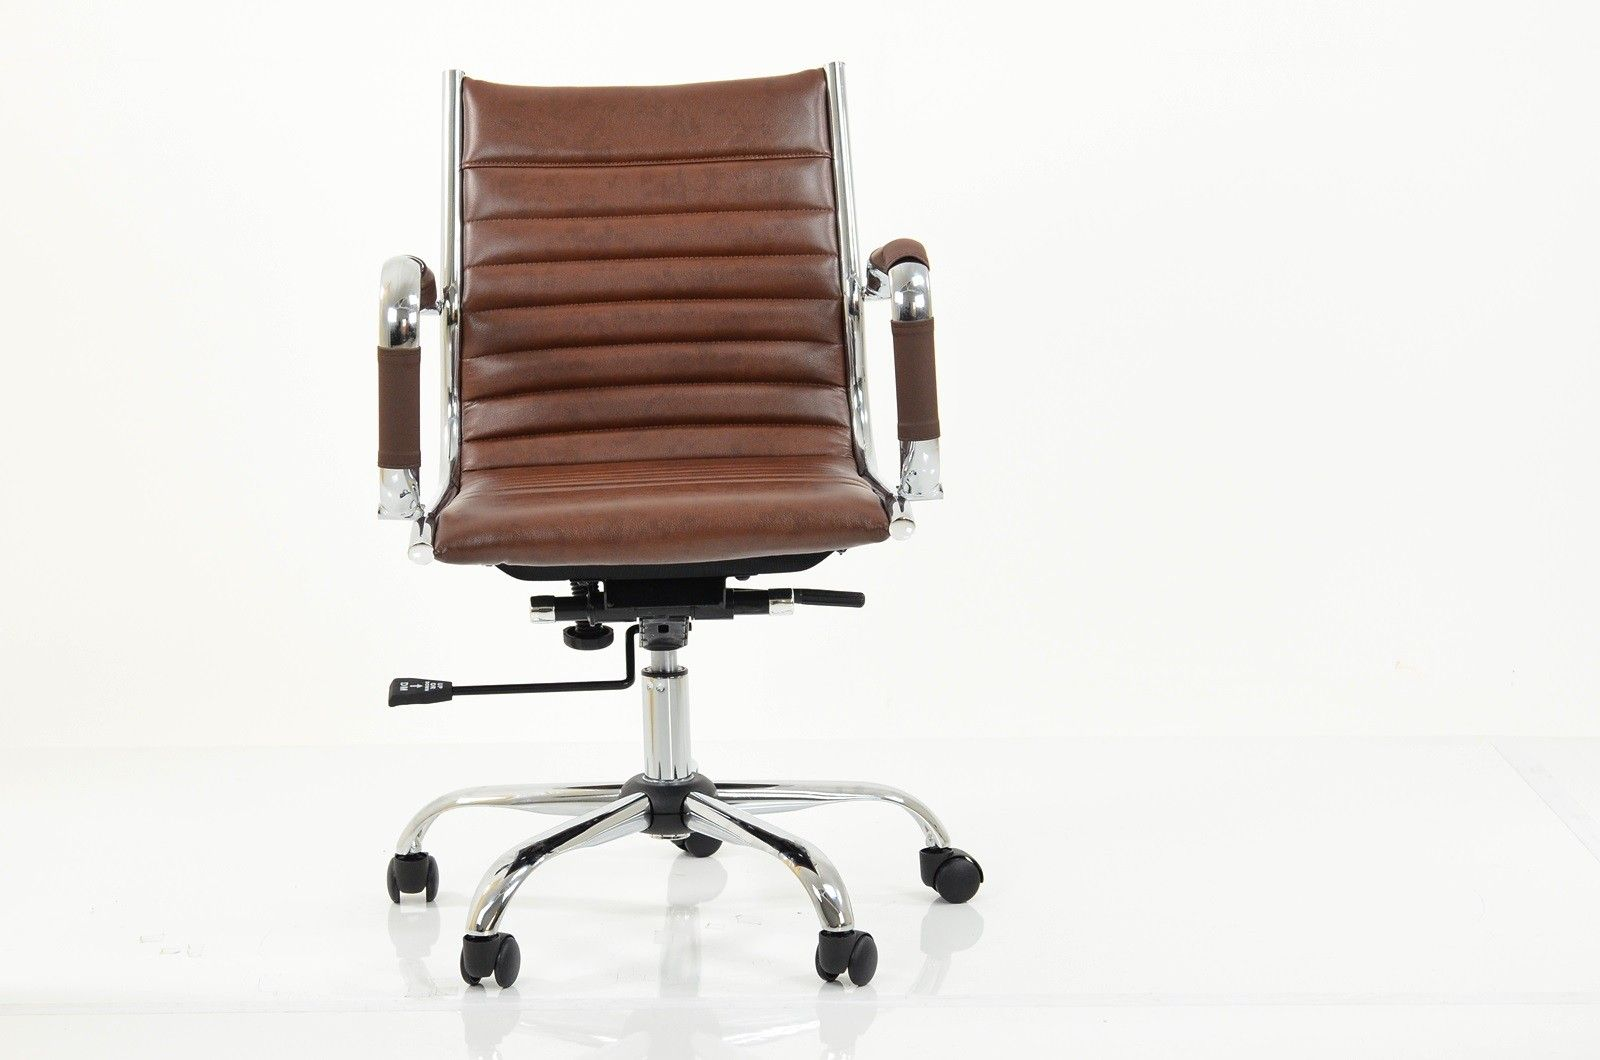 Jenson Faux Leather Office Chair Vintage Brown Office Chair Stylish Chairs Stylish Office Chairs